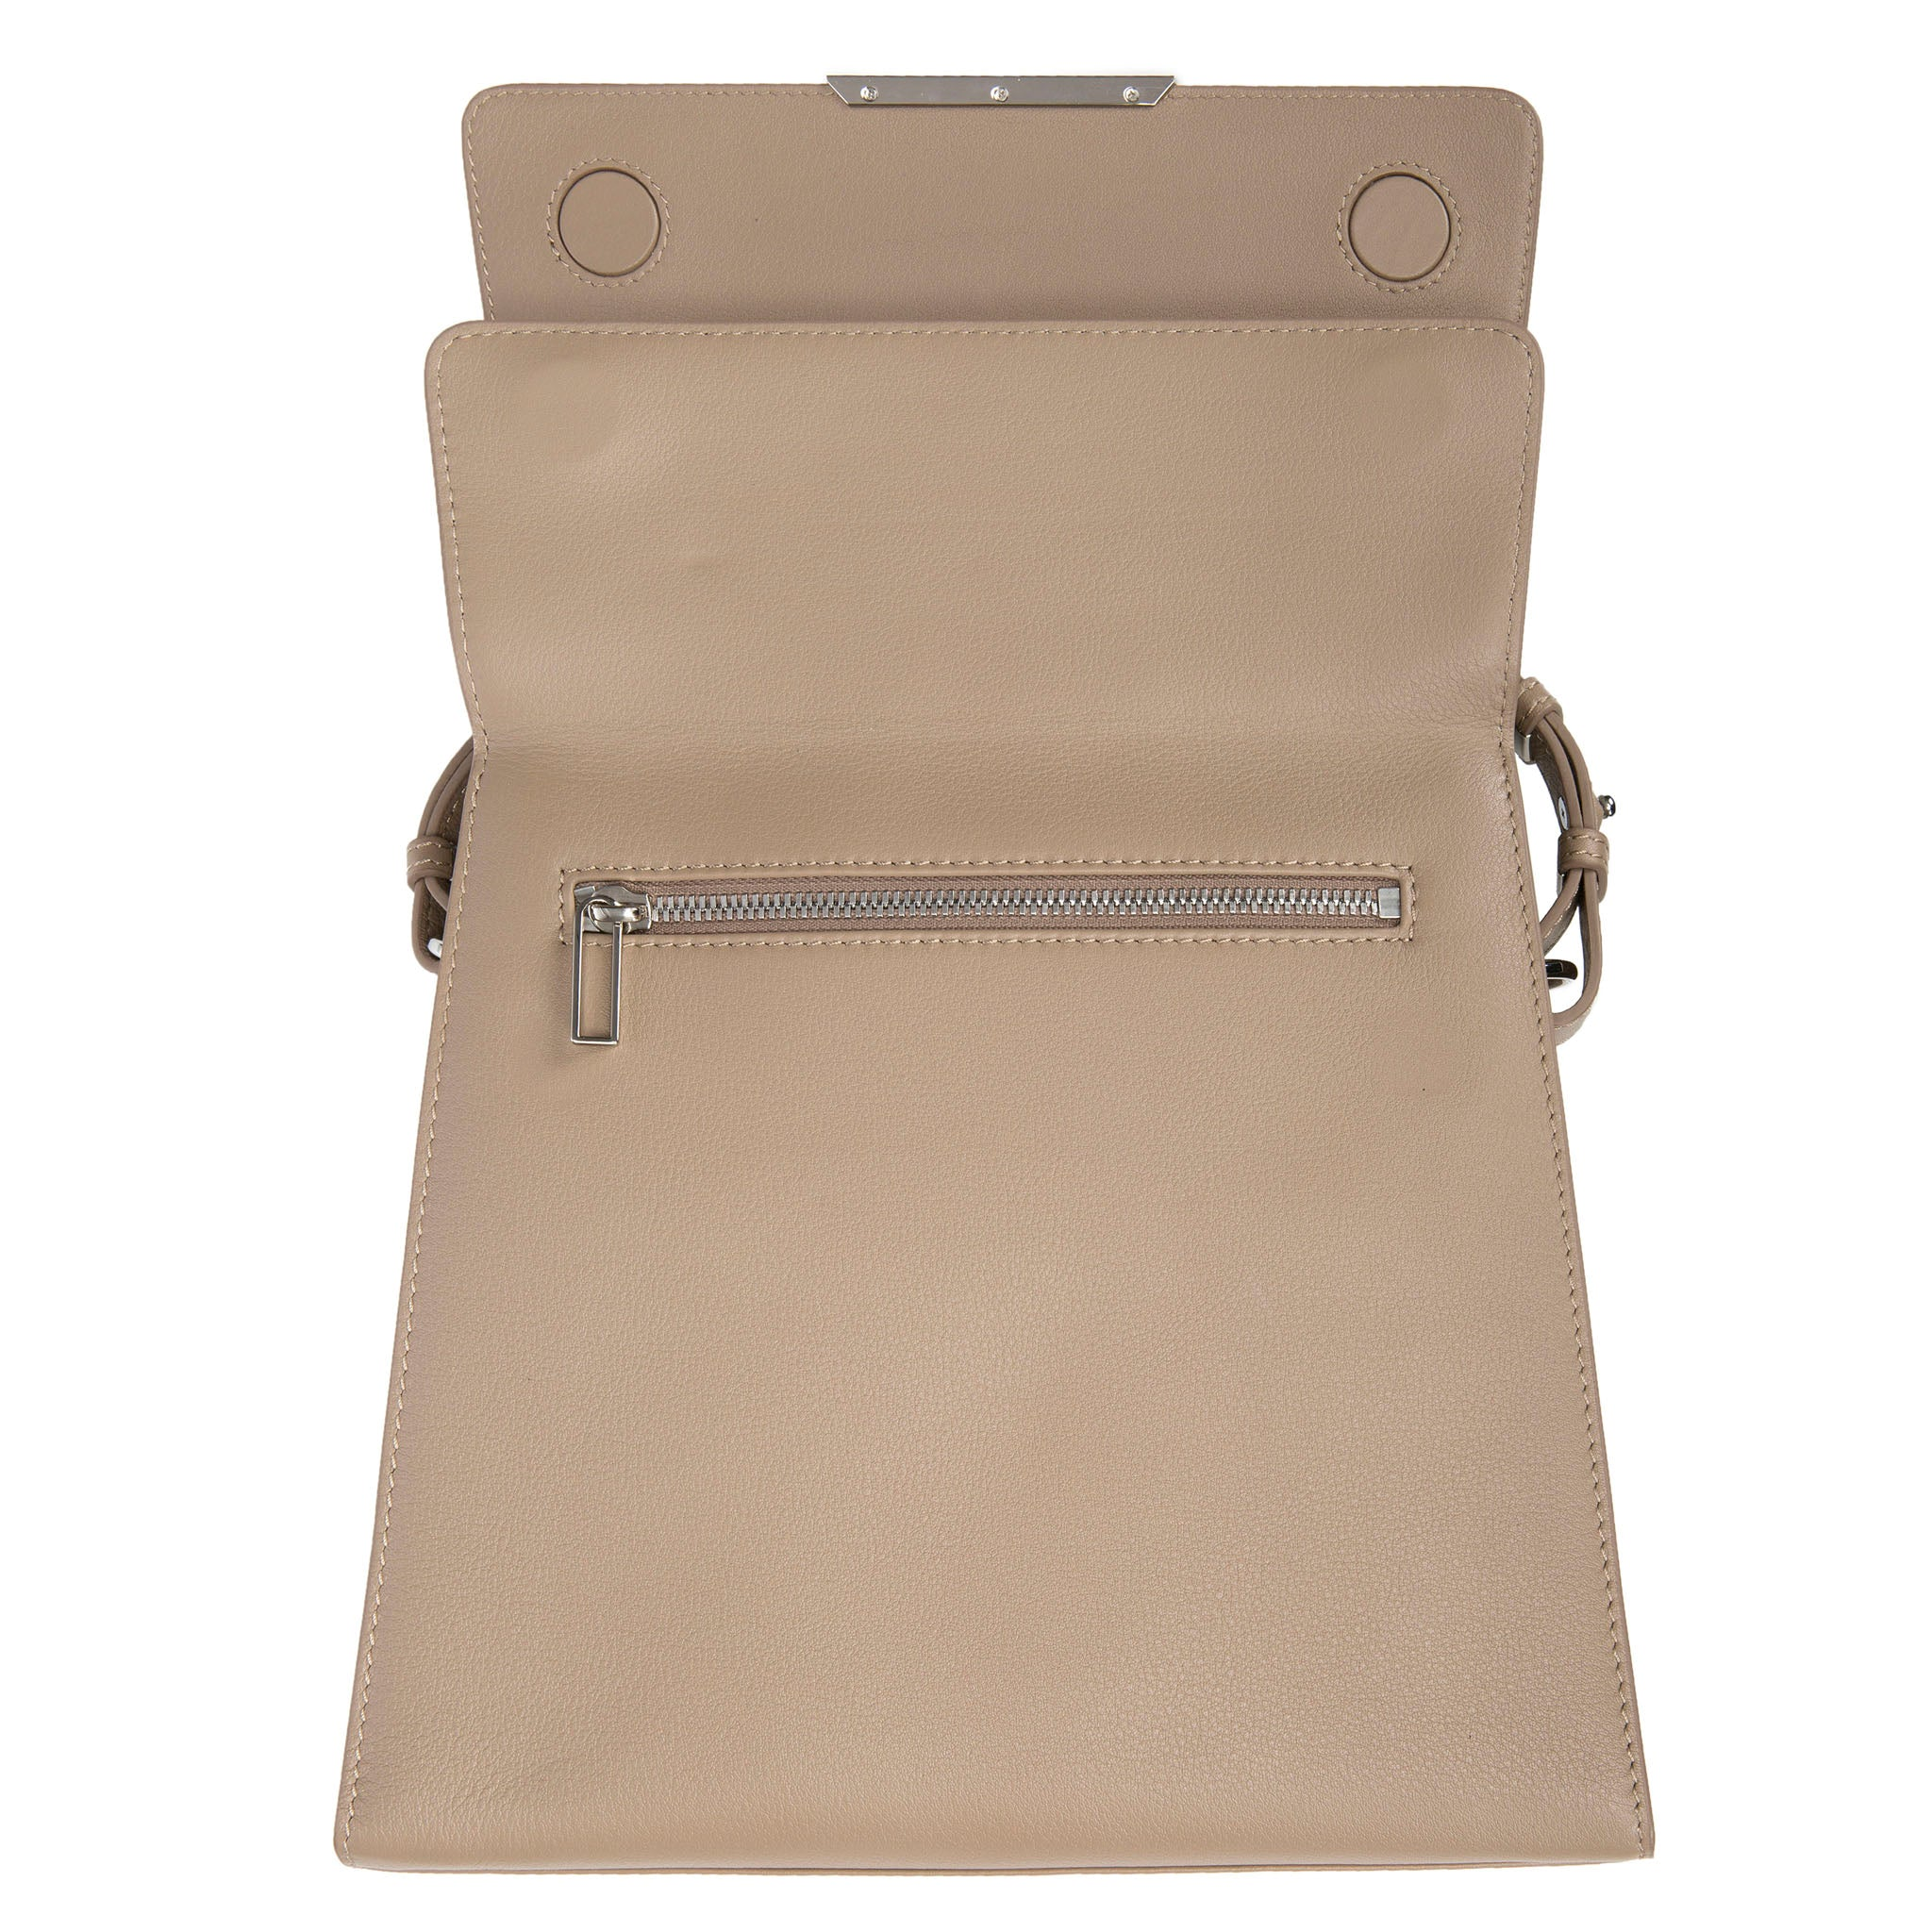 Modern Classic Crossbody Bag Gray Shagreen Top And Buff Leather Body Front Open View Jacq - Vivo Direct